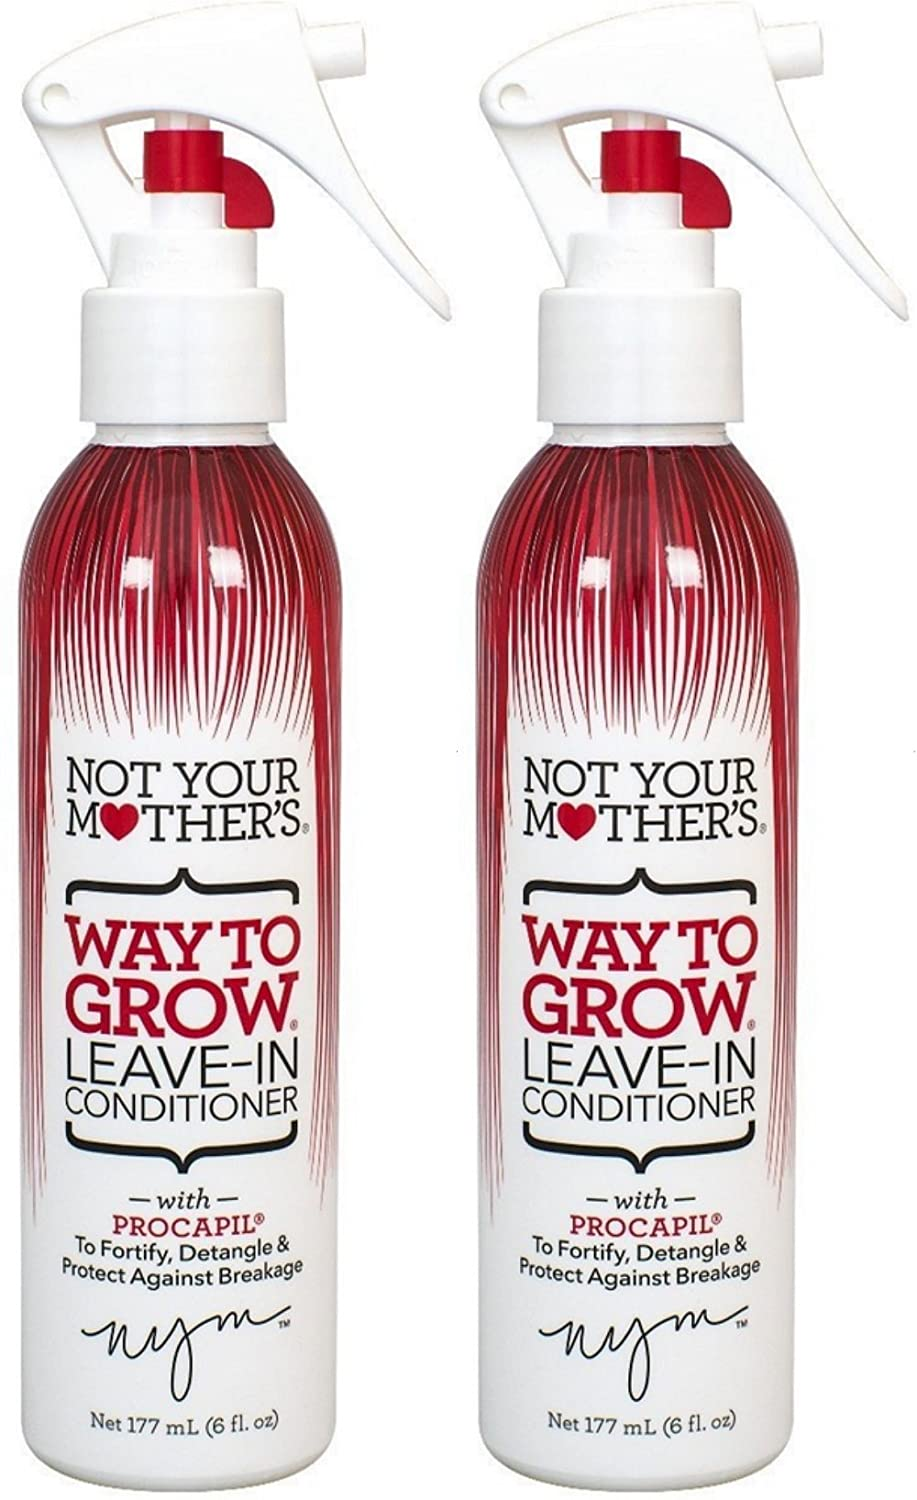 Not Your Mothers Way To Grow Leave-In Conditioner, 6 Ounce (177ml) 13024